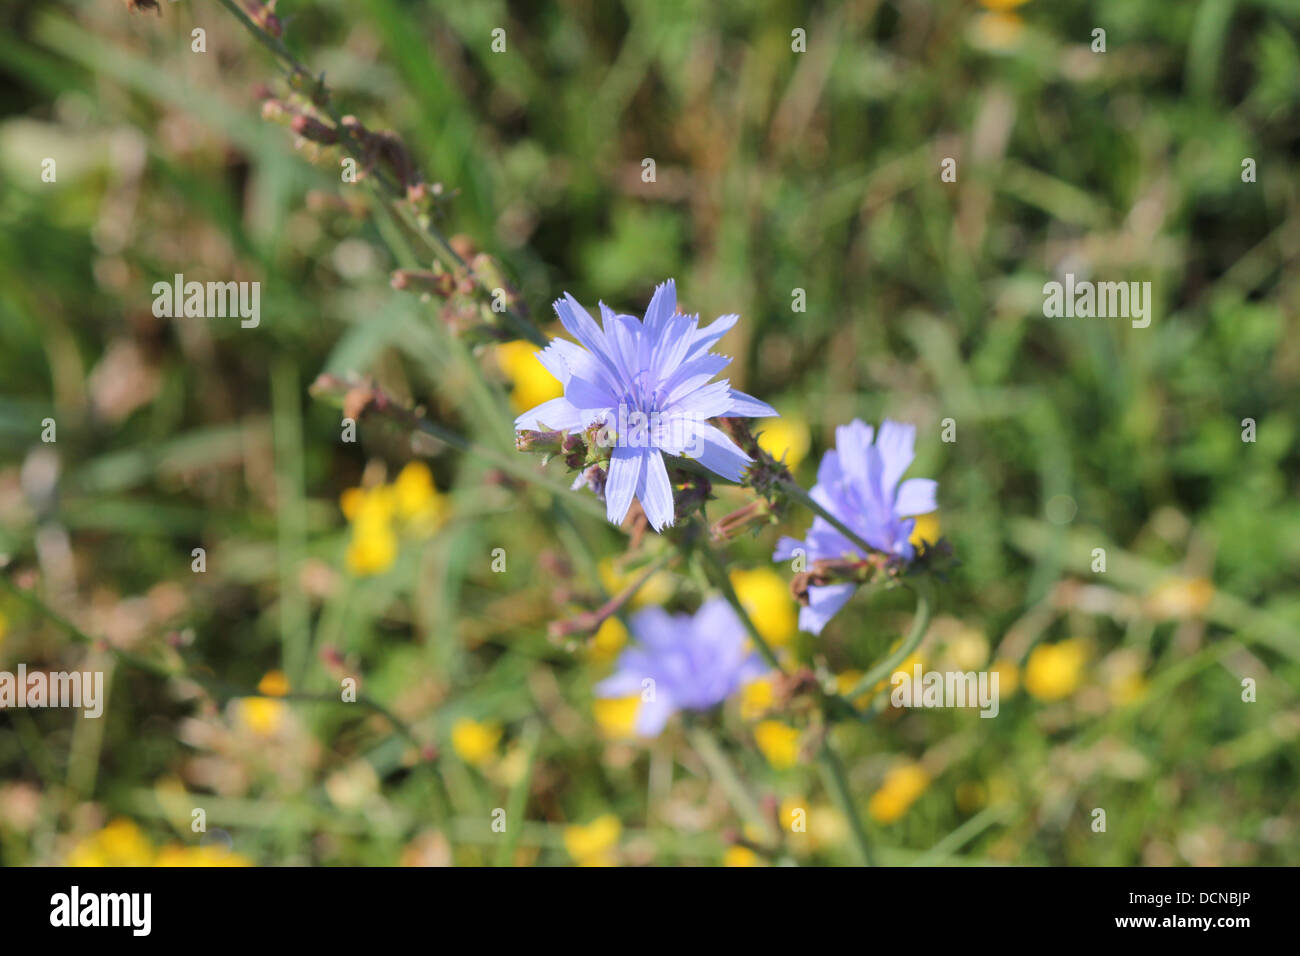 Chicory plant stock photos chicory plant stock images alamy pretty chicory plant with blue flowers in the grass beside a road stock image izmirmasajfo